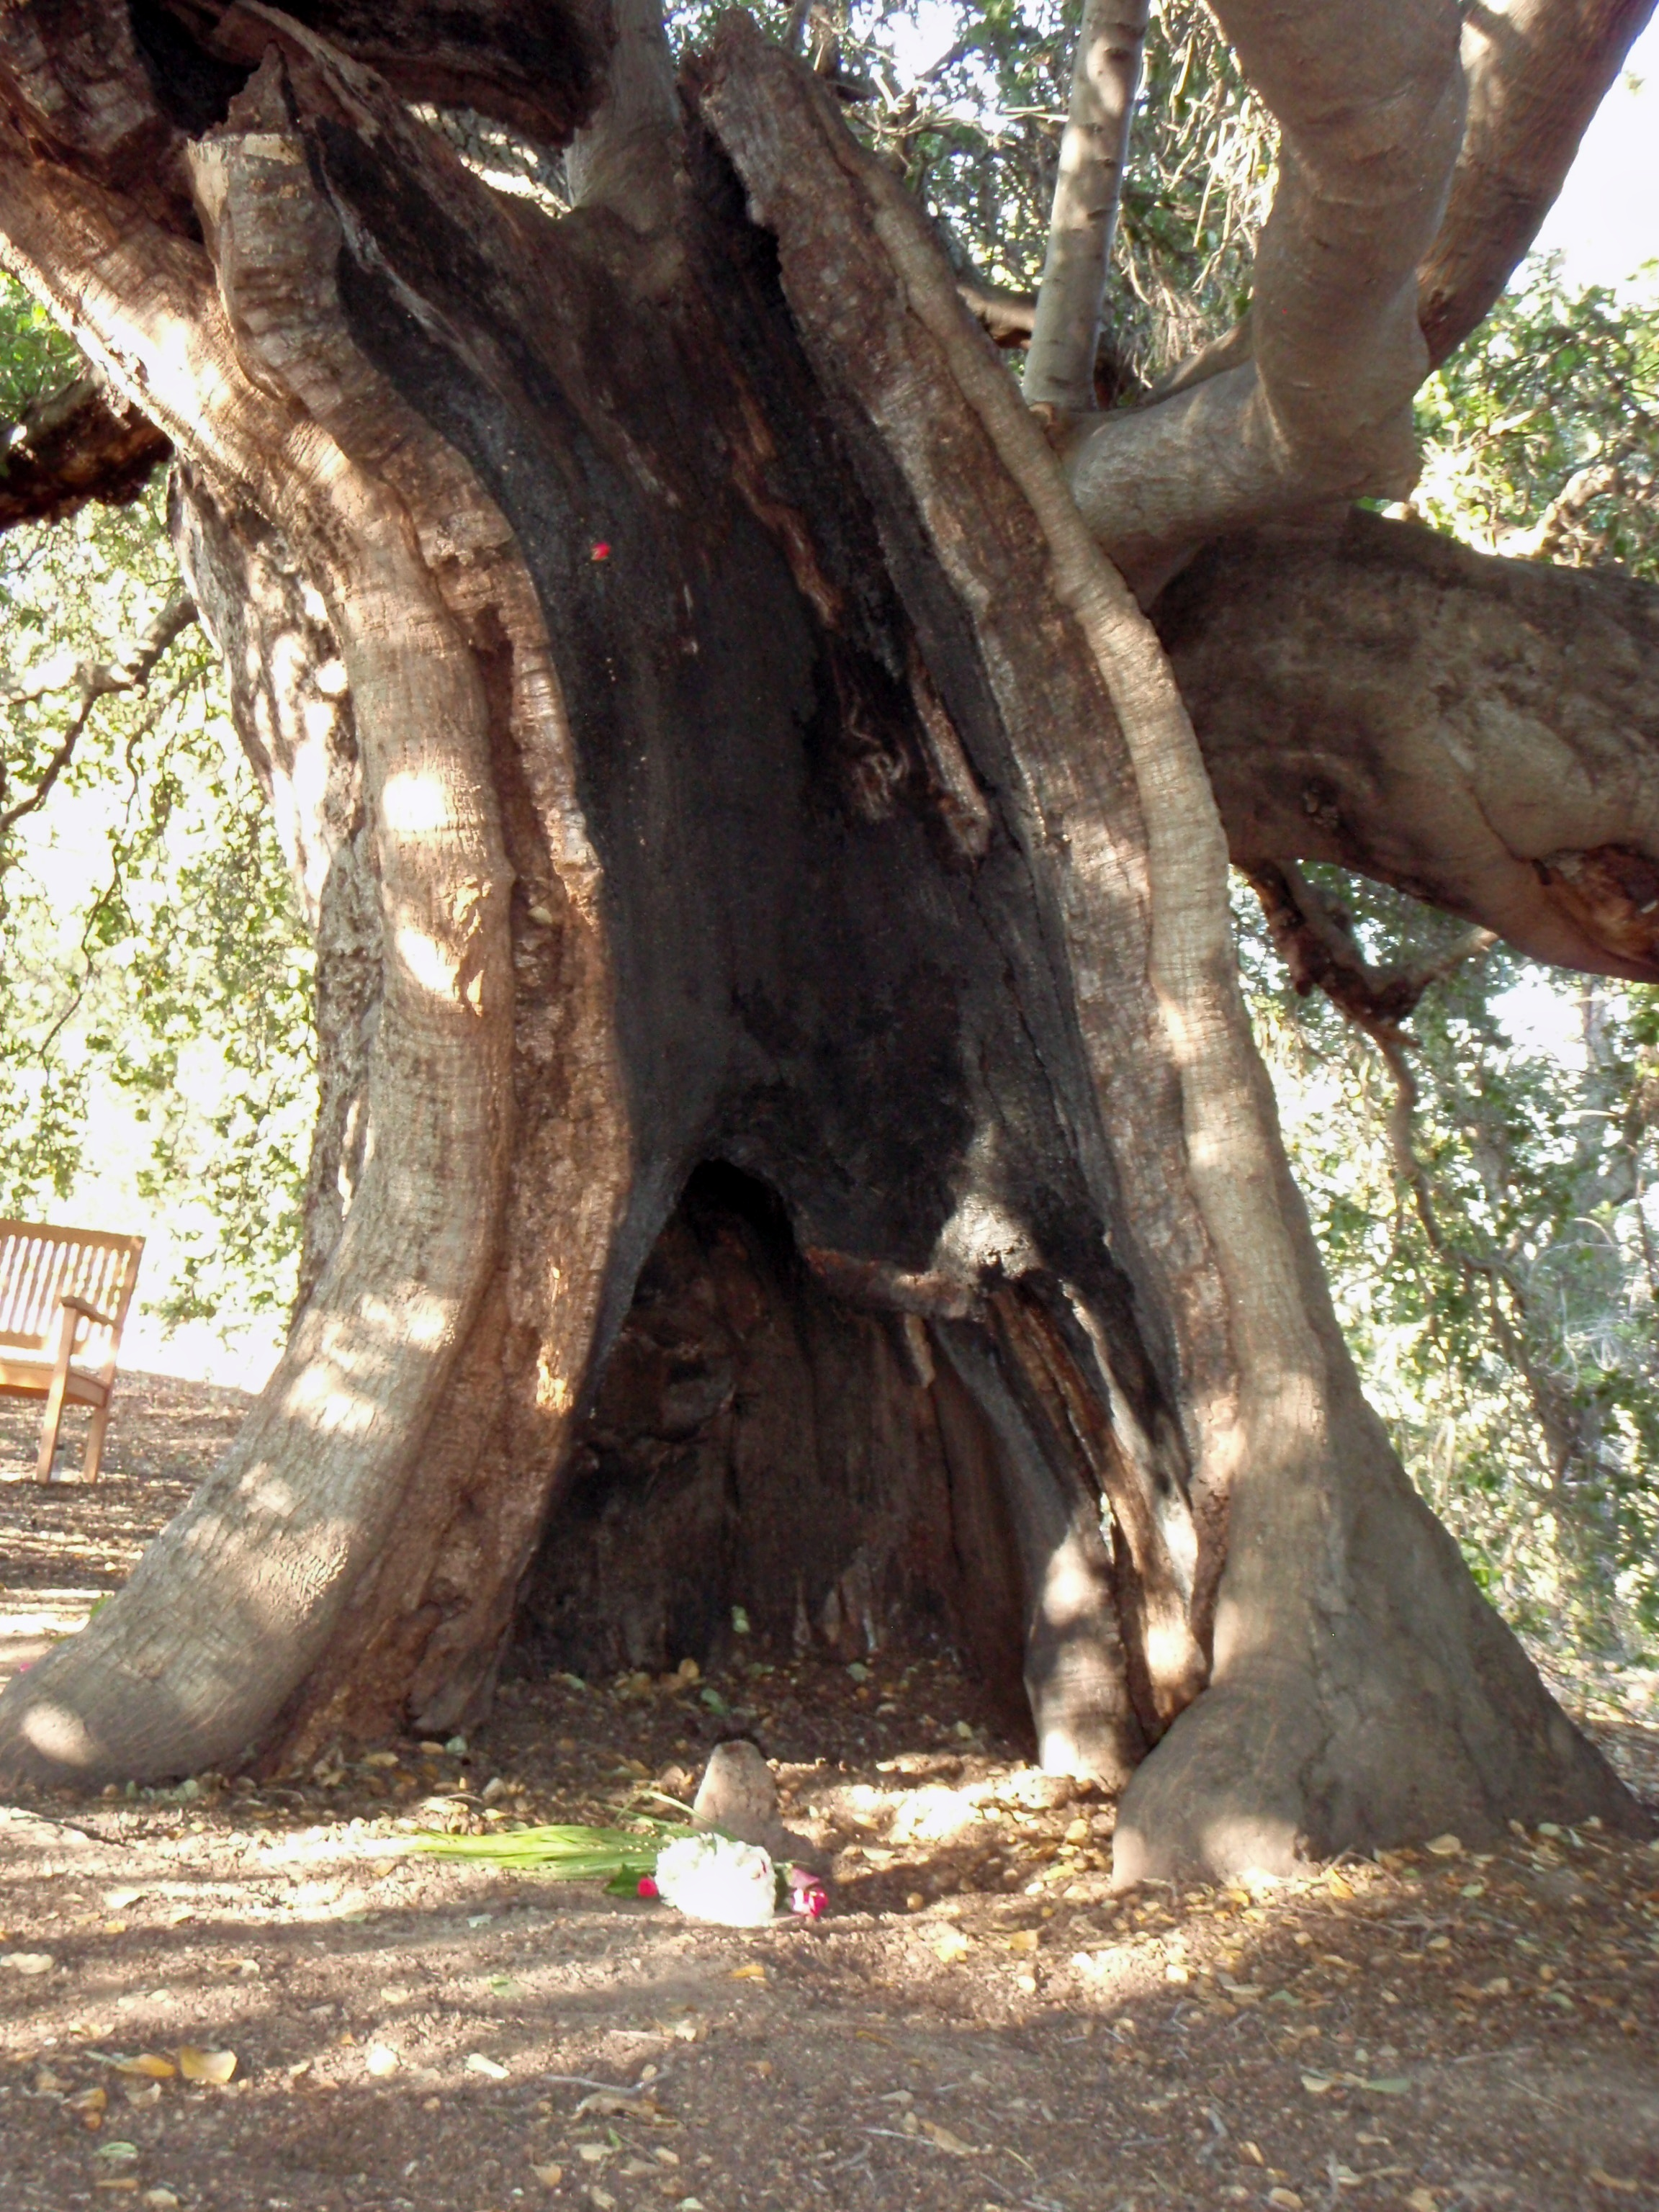 ALMOST 27 YEARS after the 1985 New Life Fire, the burned hollow of Baba's Tree trunk remained. It continued to support growing limbs and branches along with new foliage. (Photo: Sam Ervin, 2012)